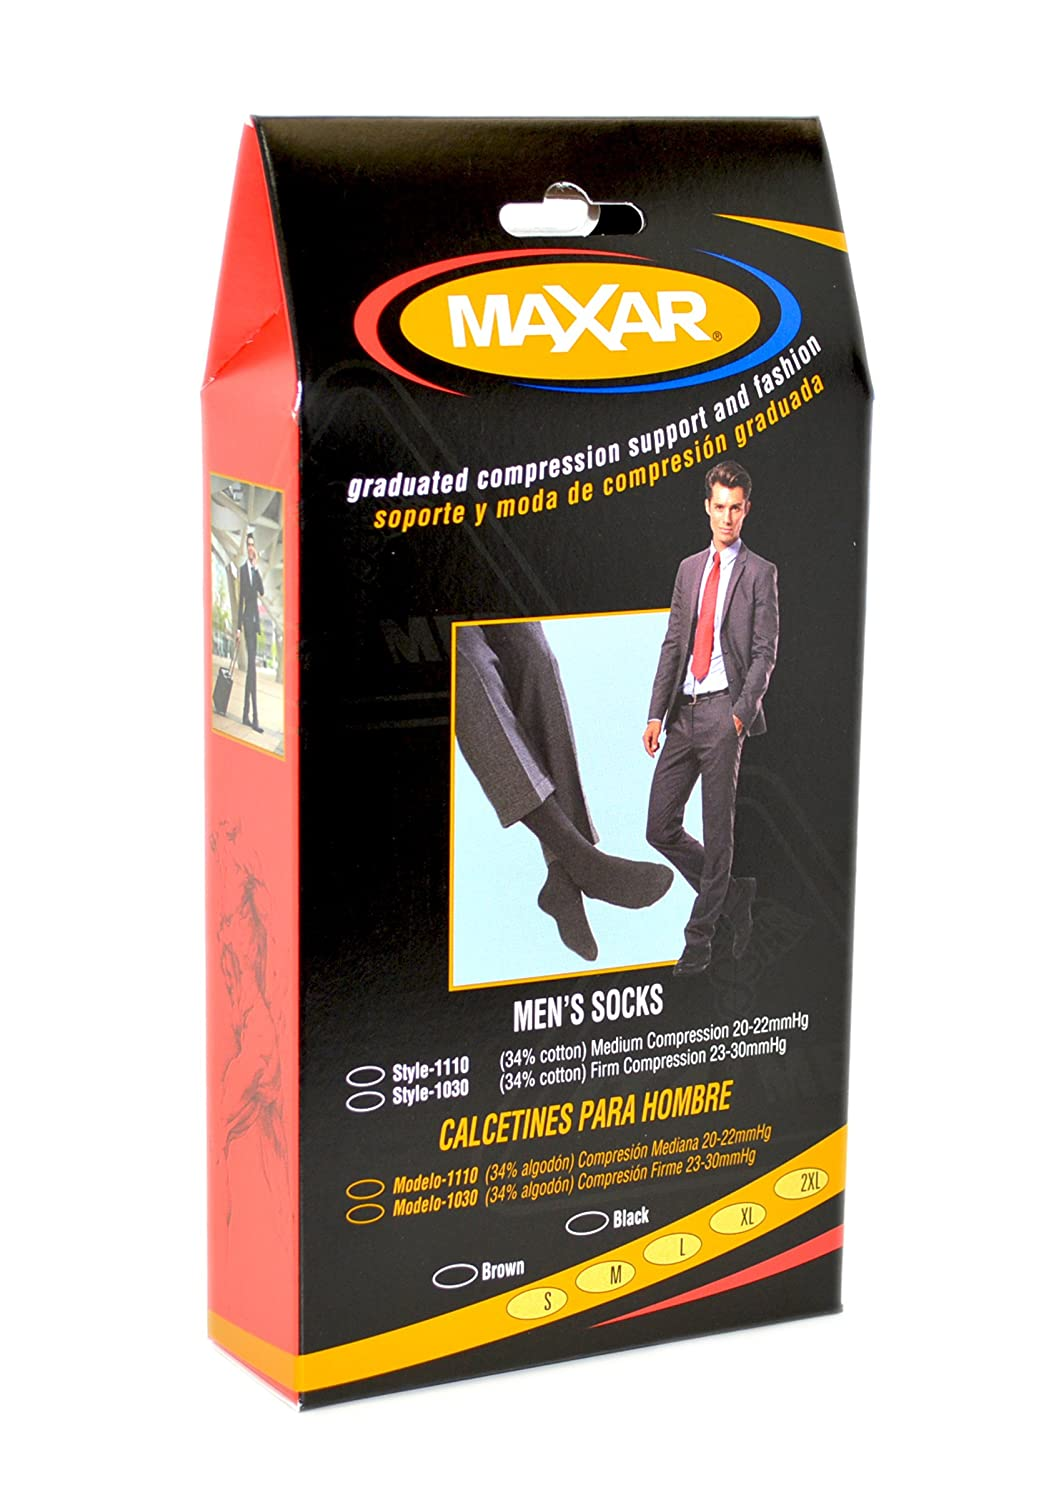 Amazon.com: MAXAR Mens Trouser Support Socks (20-22 mmHg) Black, Small: Health & Personal Care